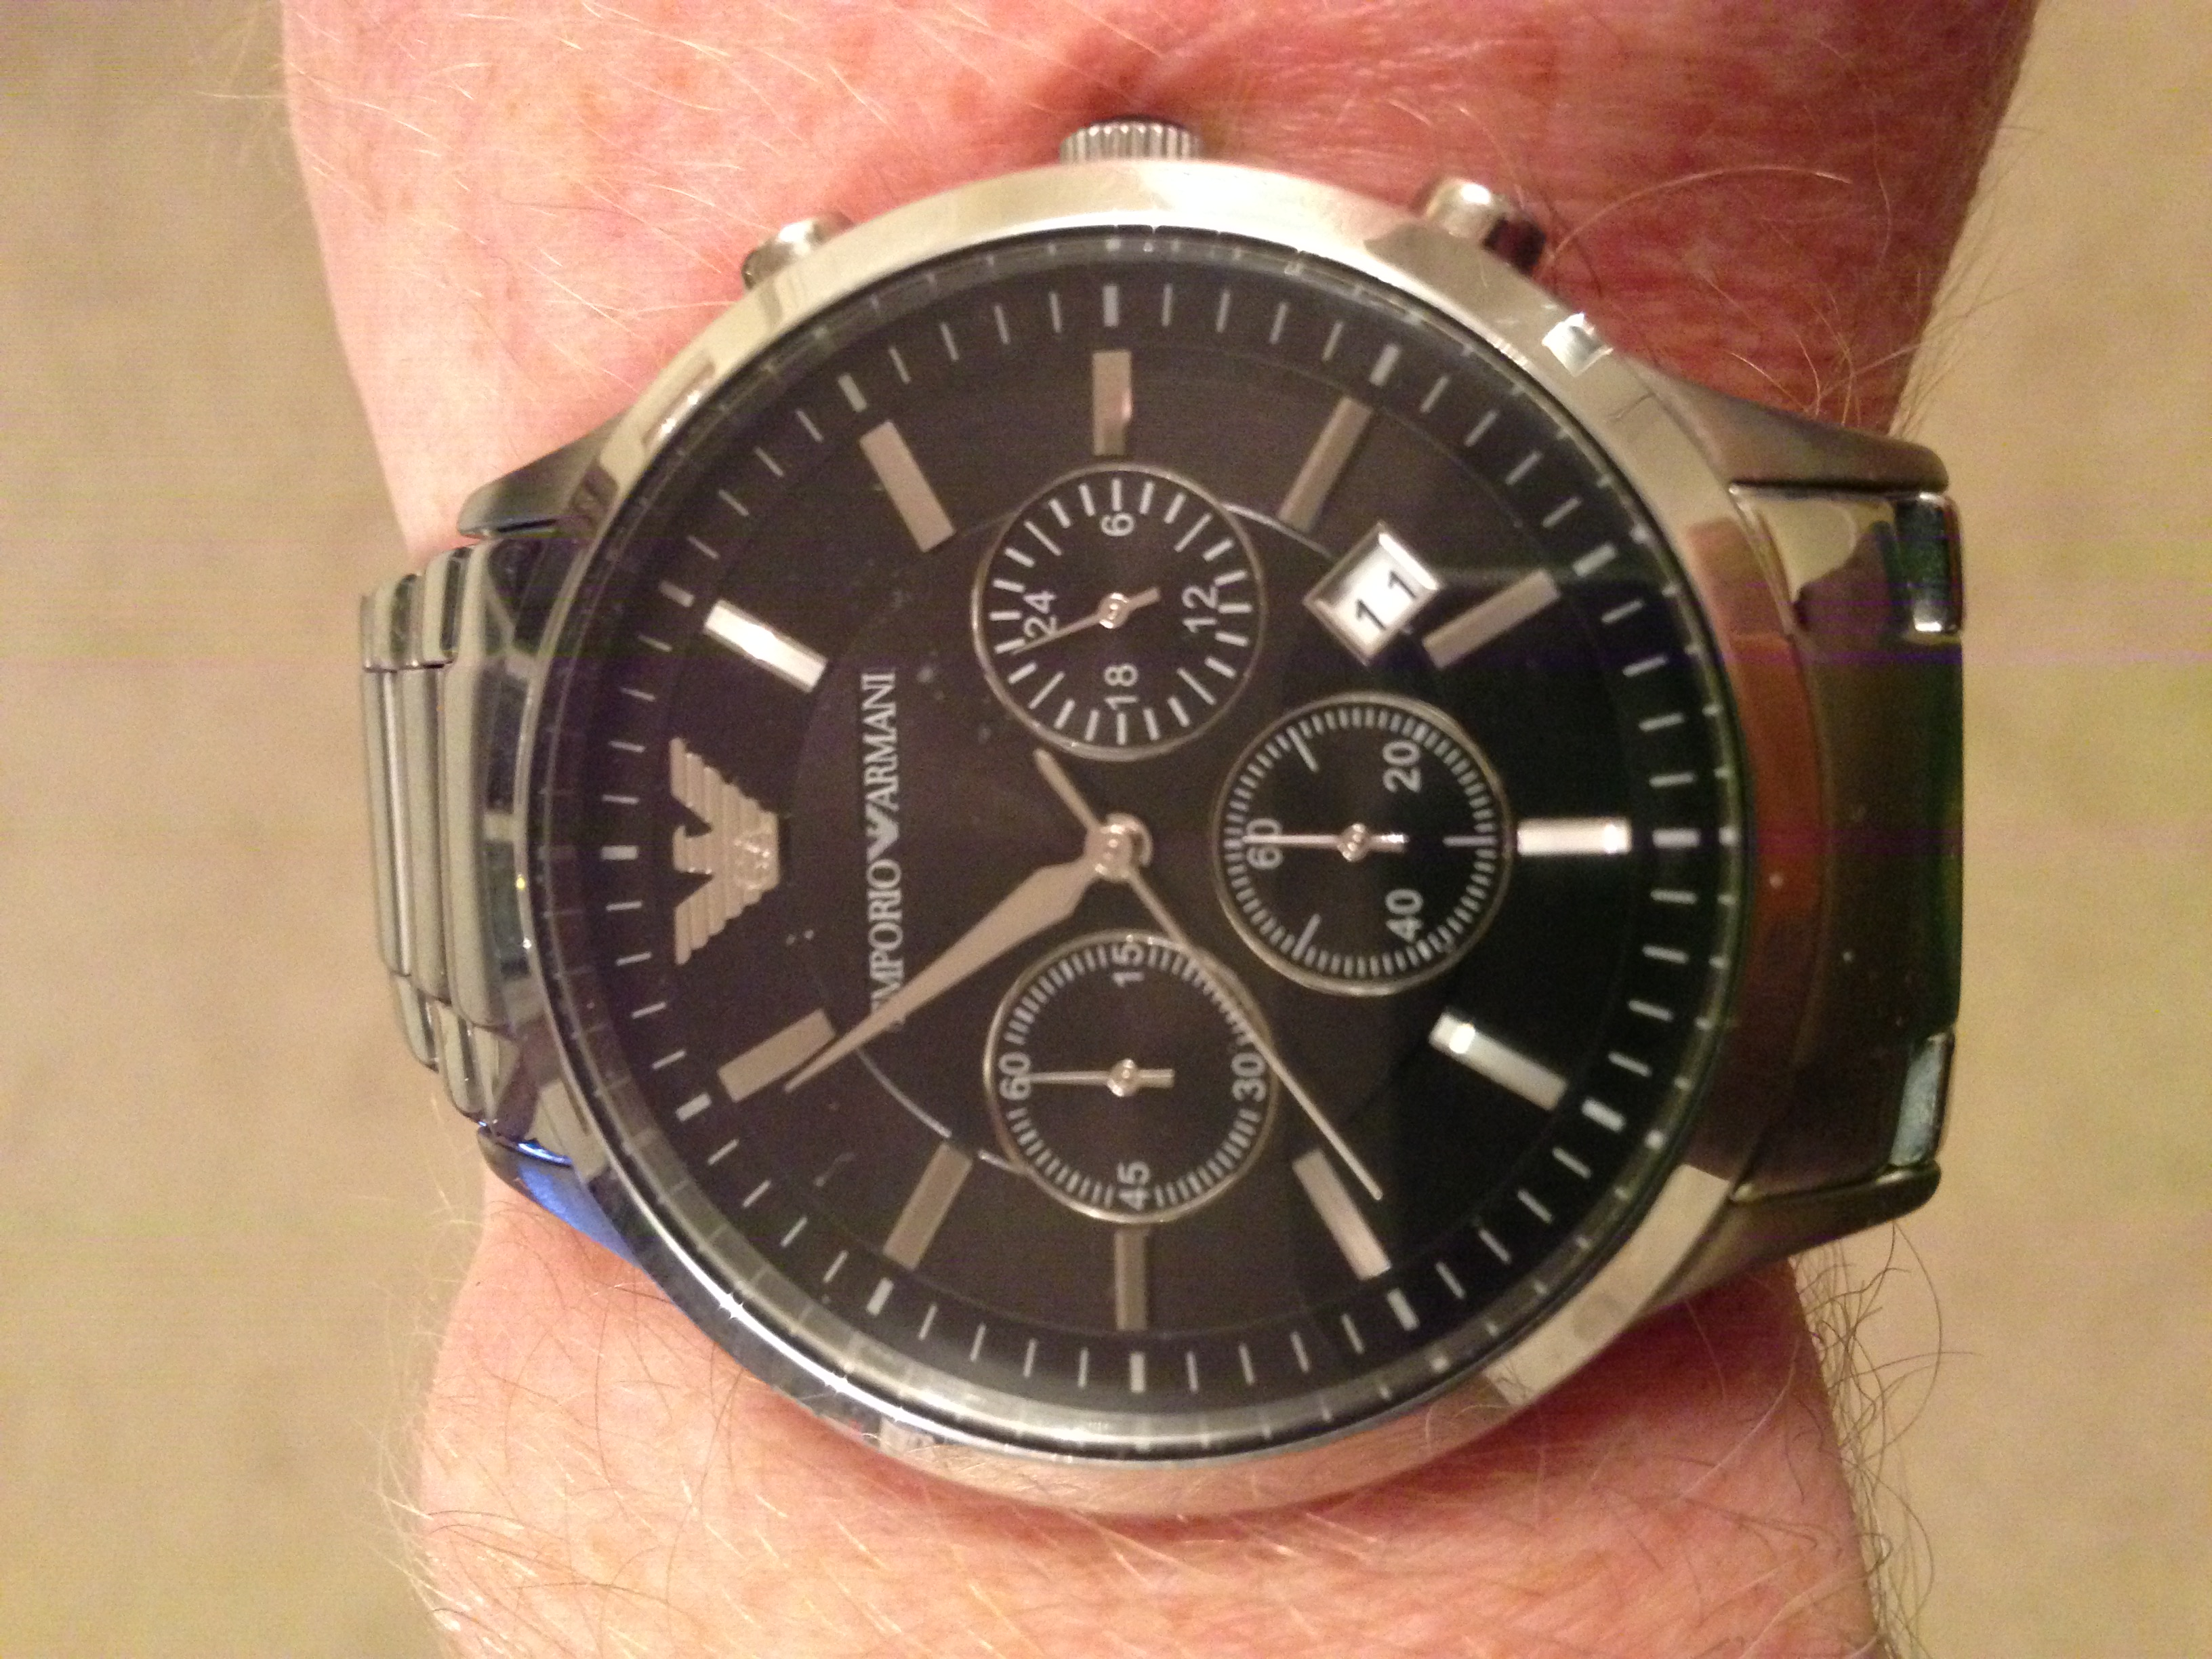 Gents Emporio Armani Chronograph Watch (AR2434)  da89e0704